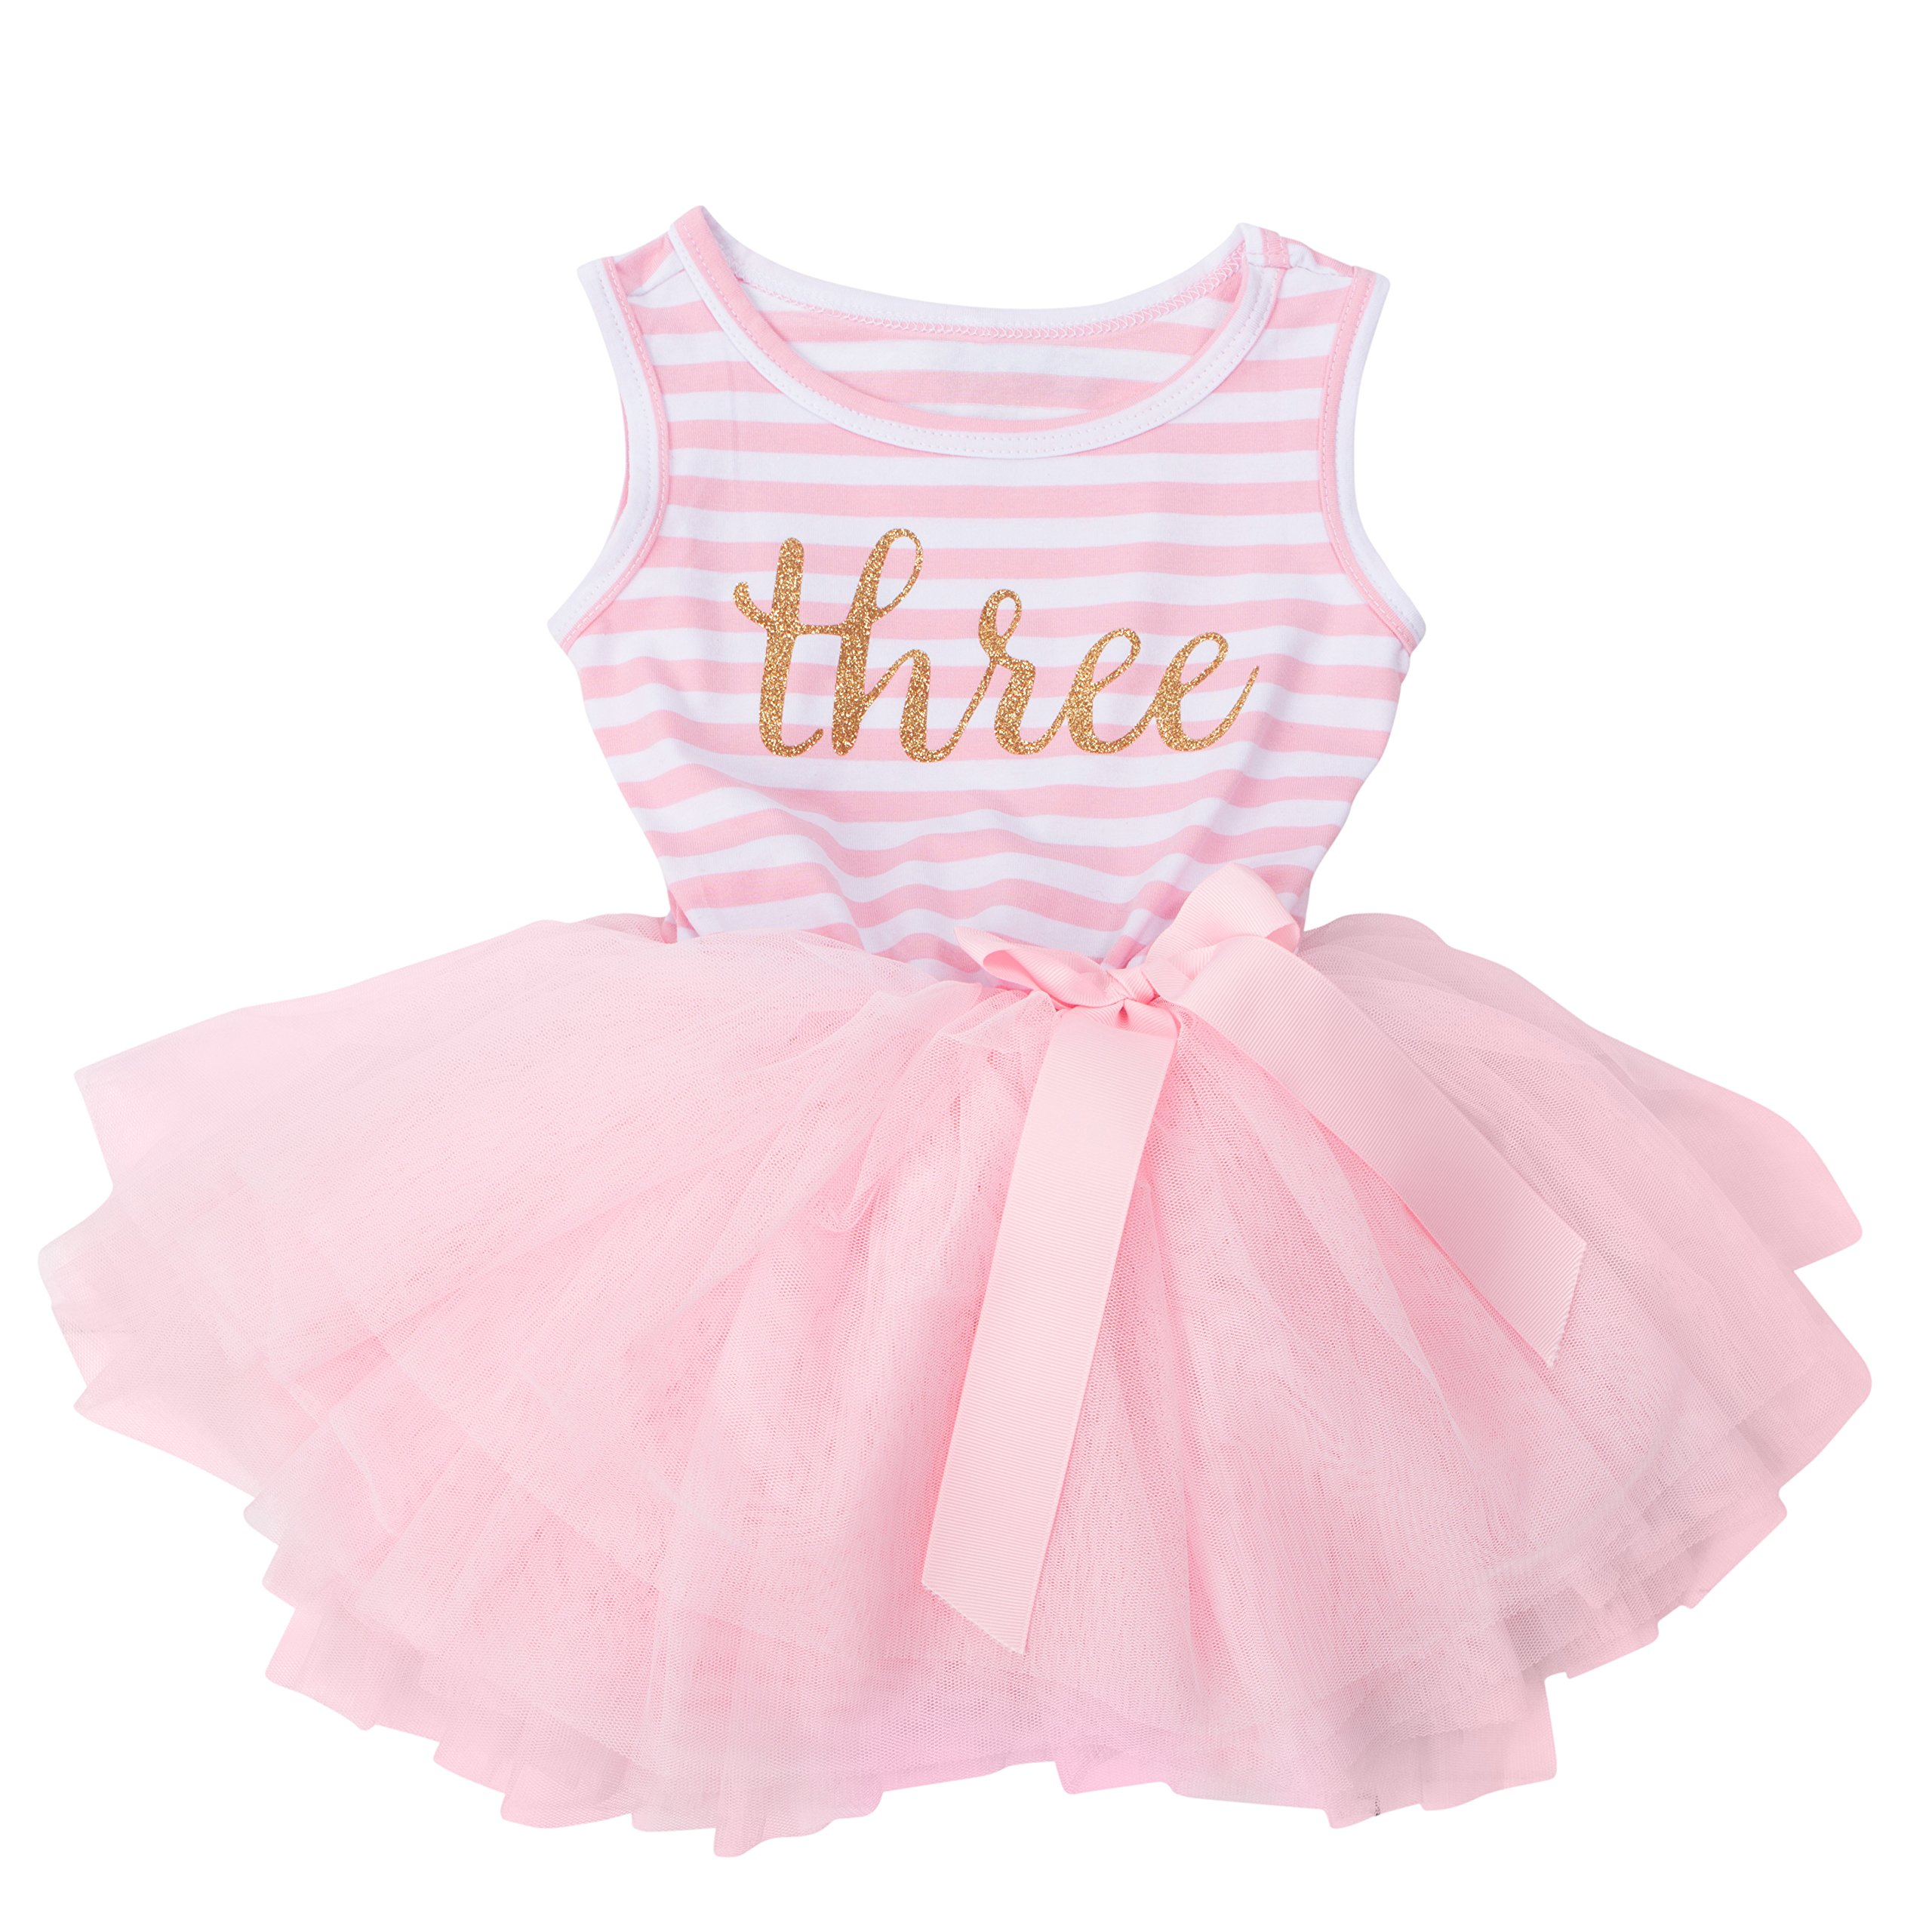 Grace & Lucille Toddler Birthday Dress (3rd Birthday) (Pink Striped Sleeveless, Gold, 3T)